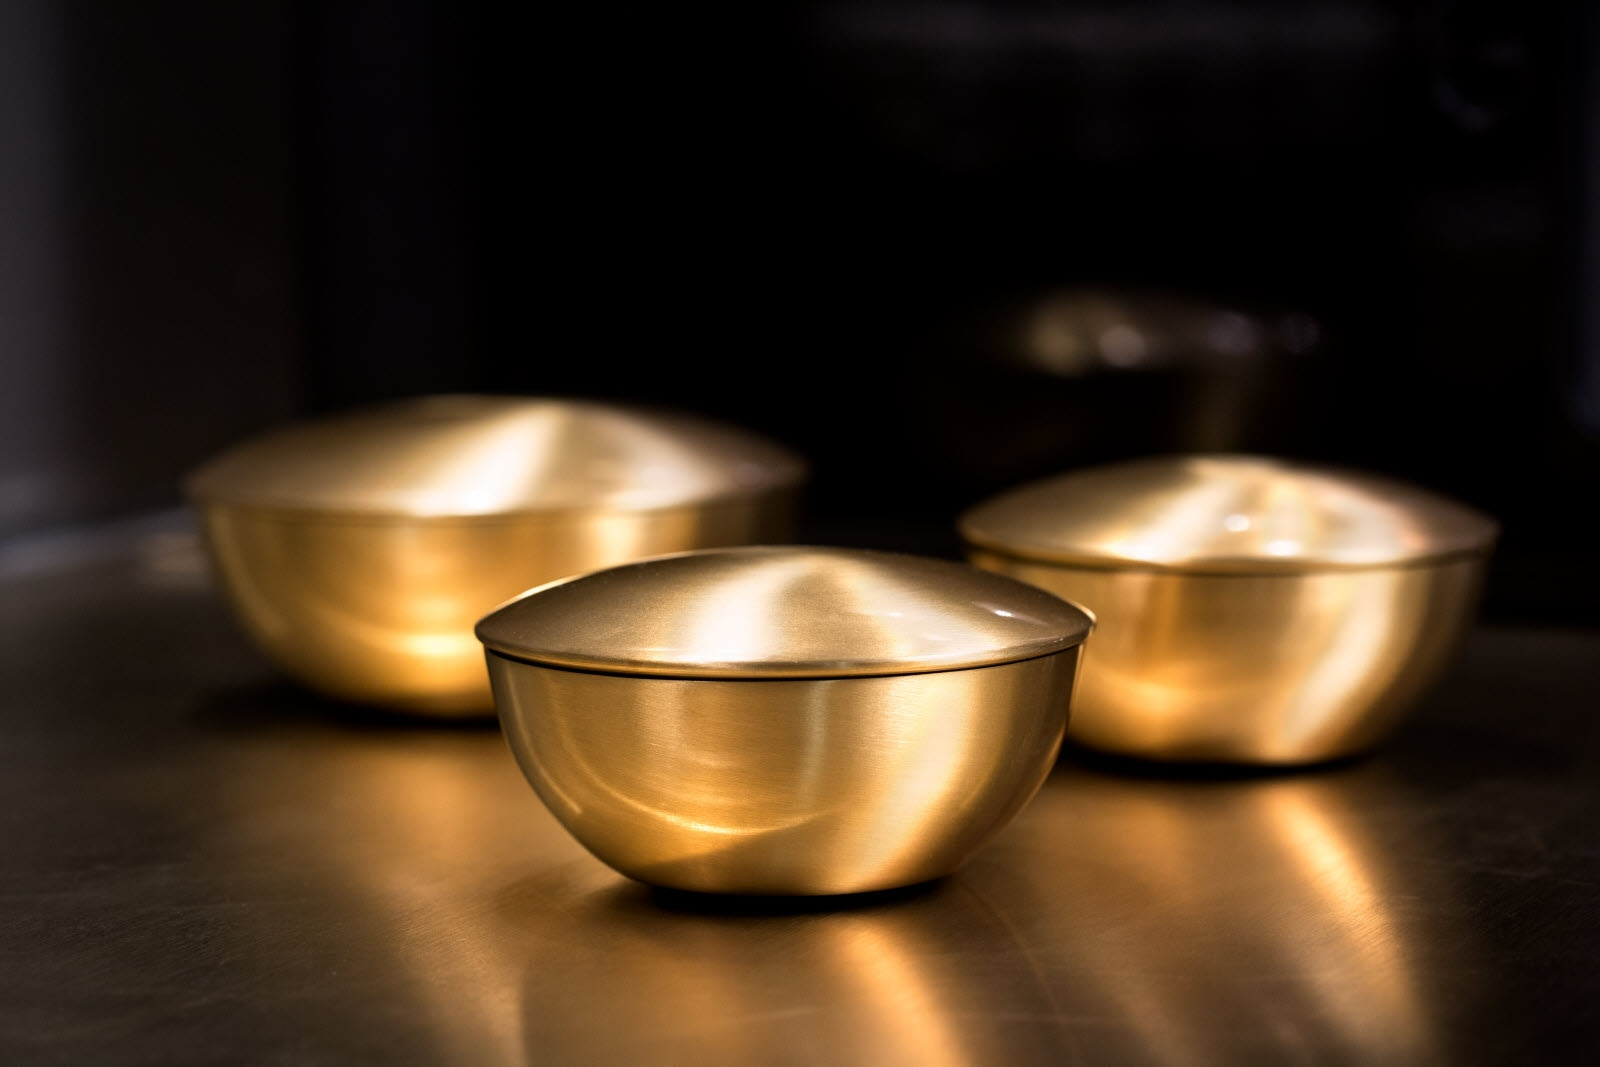 scandic-palace-meeting-detail-bowls.jpg